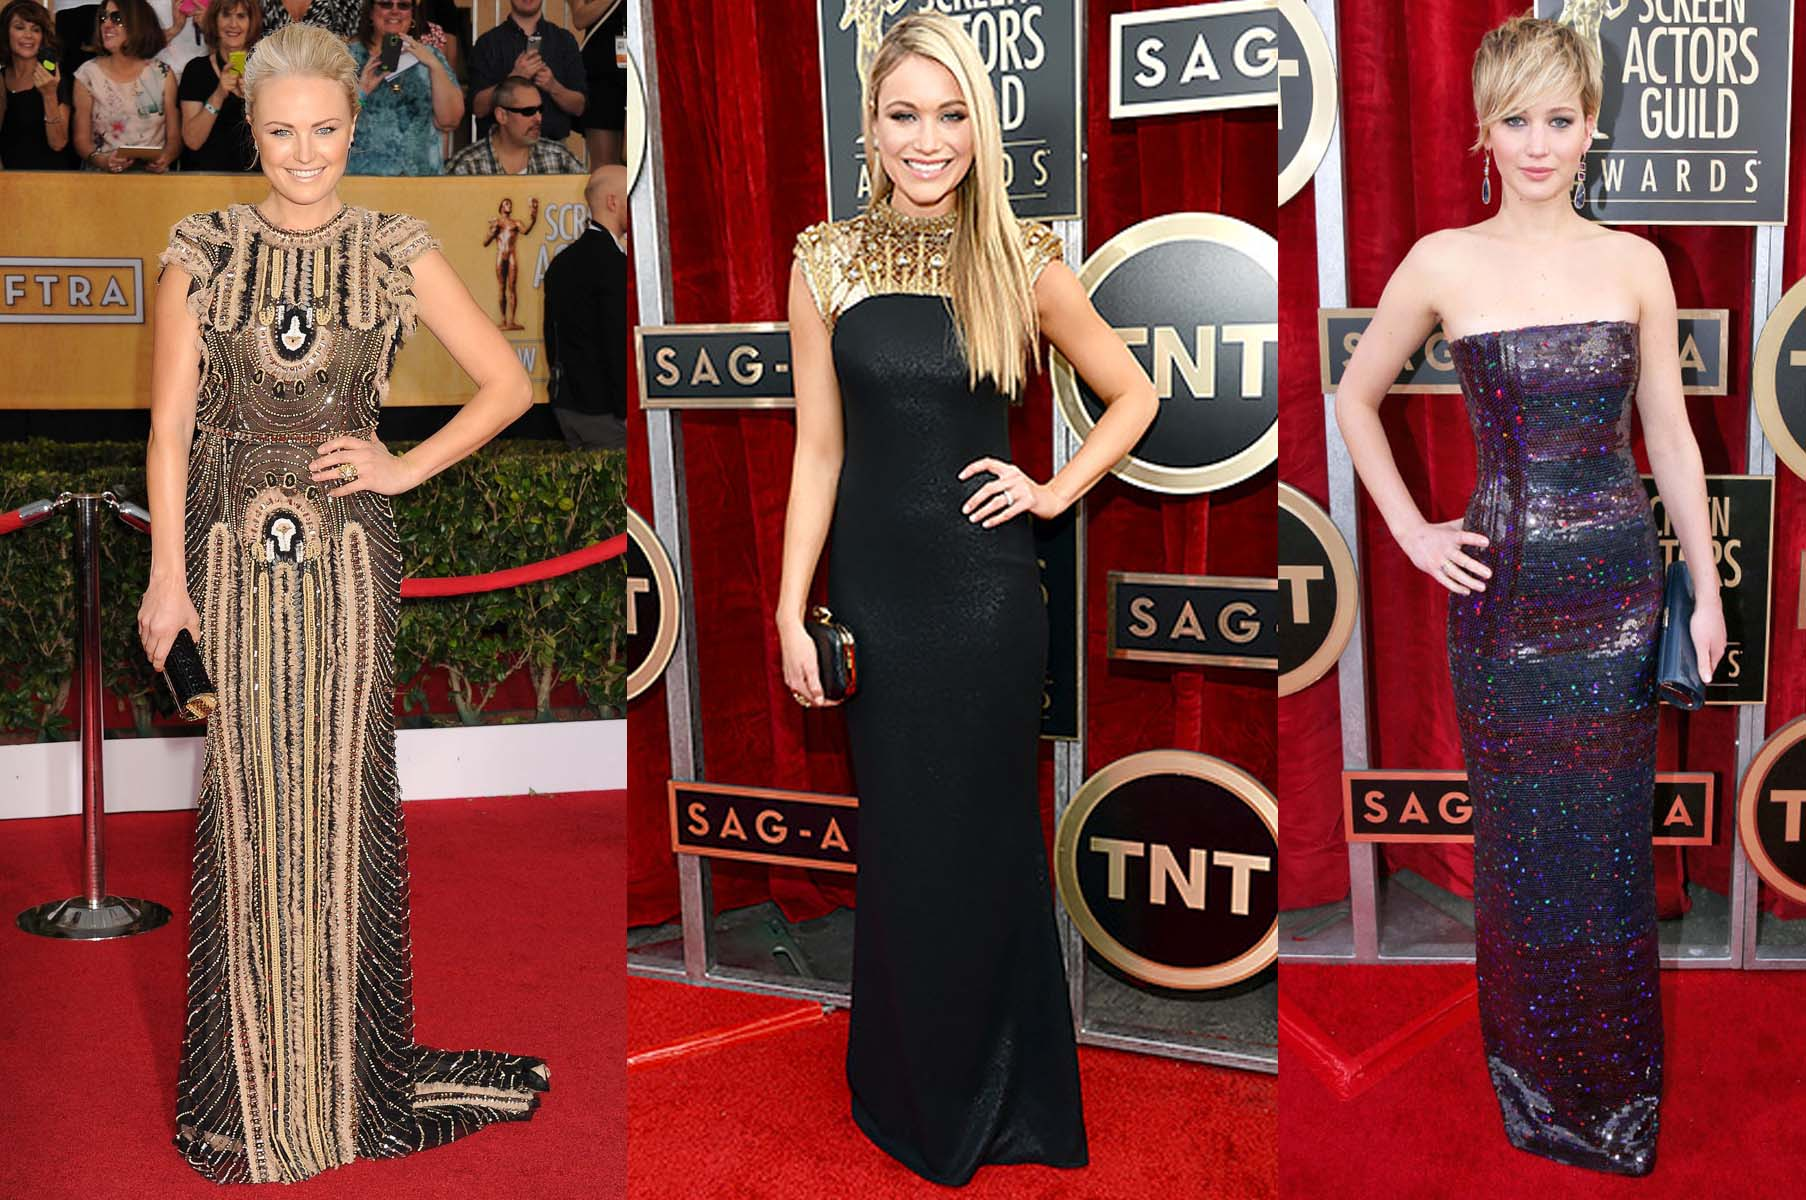 Malin Akerman, Katrina Bowden and  Jennifer Lawerence (left to right) at the 2014 SAG awards. (Photo: SAG)